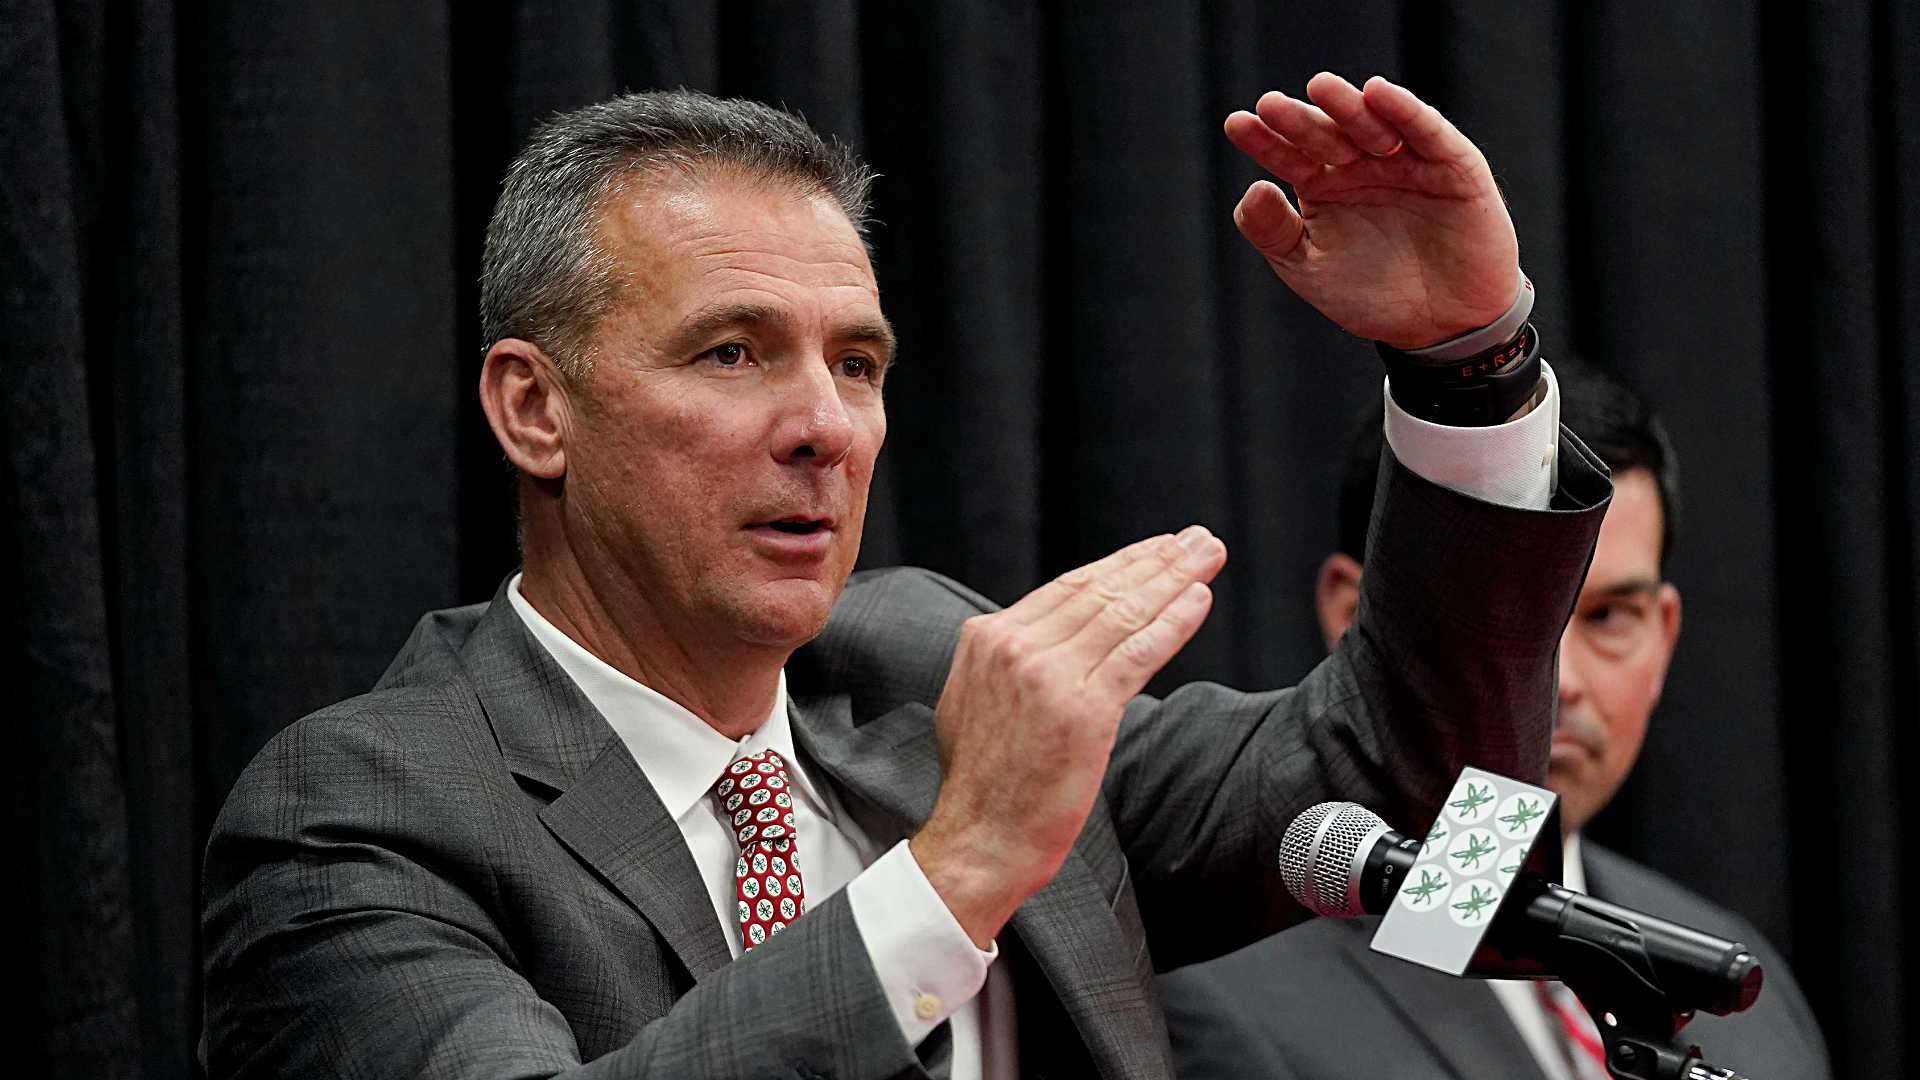 Urban Meyer joining Fox Sports as college football analyst